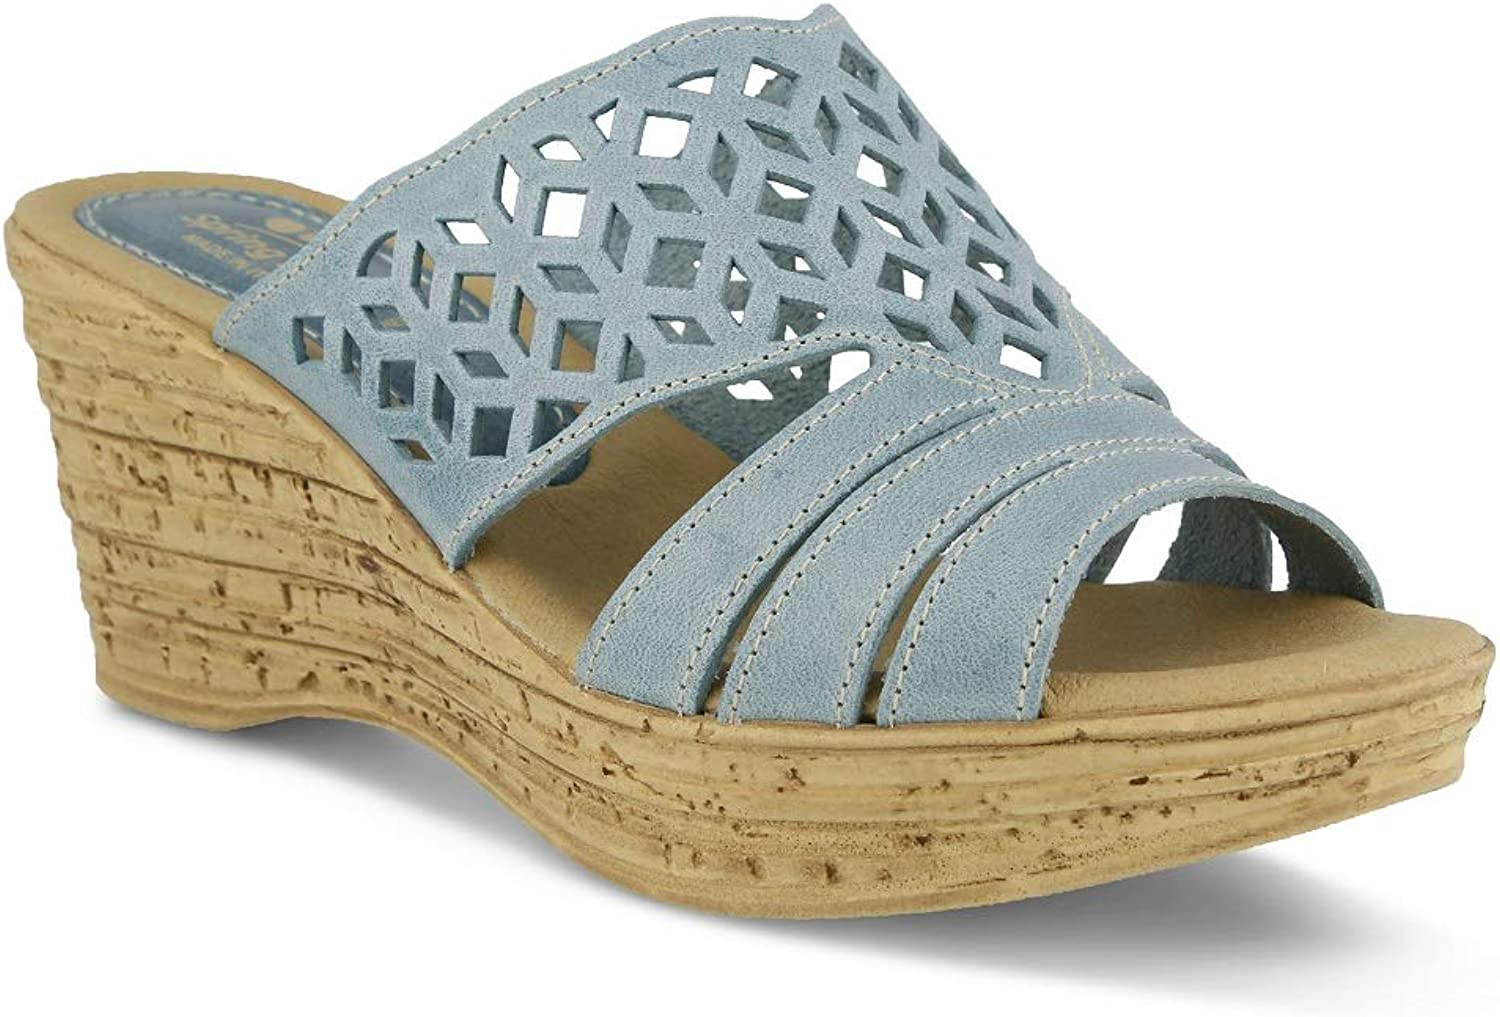 Spring Step Women's Vino Sandals   color bluee   Leather Sandals